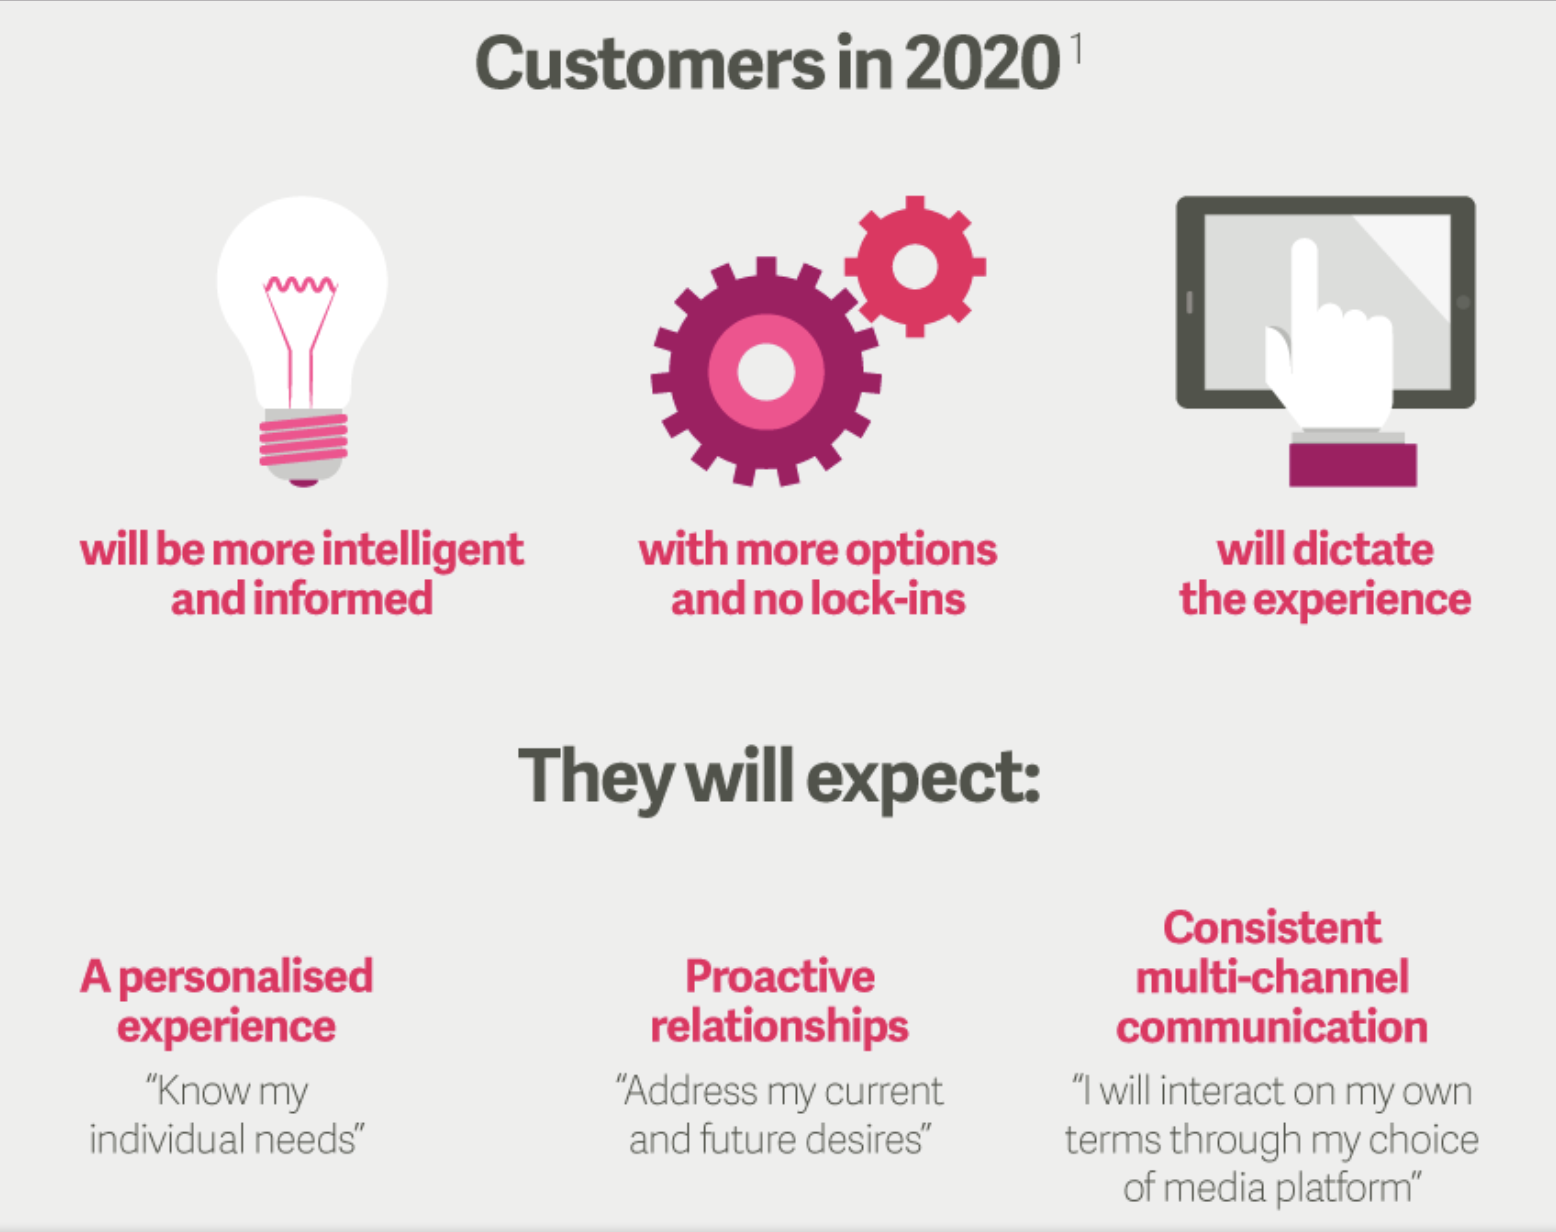 infographic: customers are expecting a personalized experience and relationships.